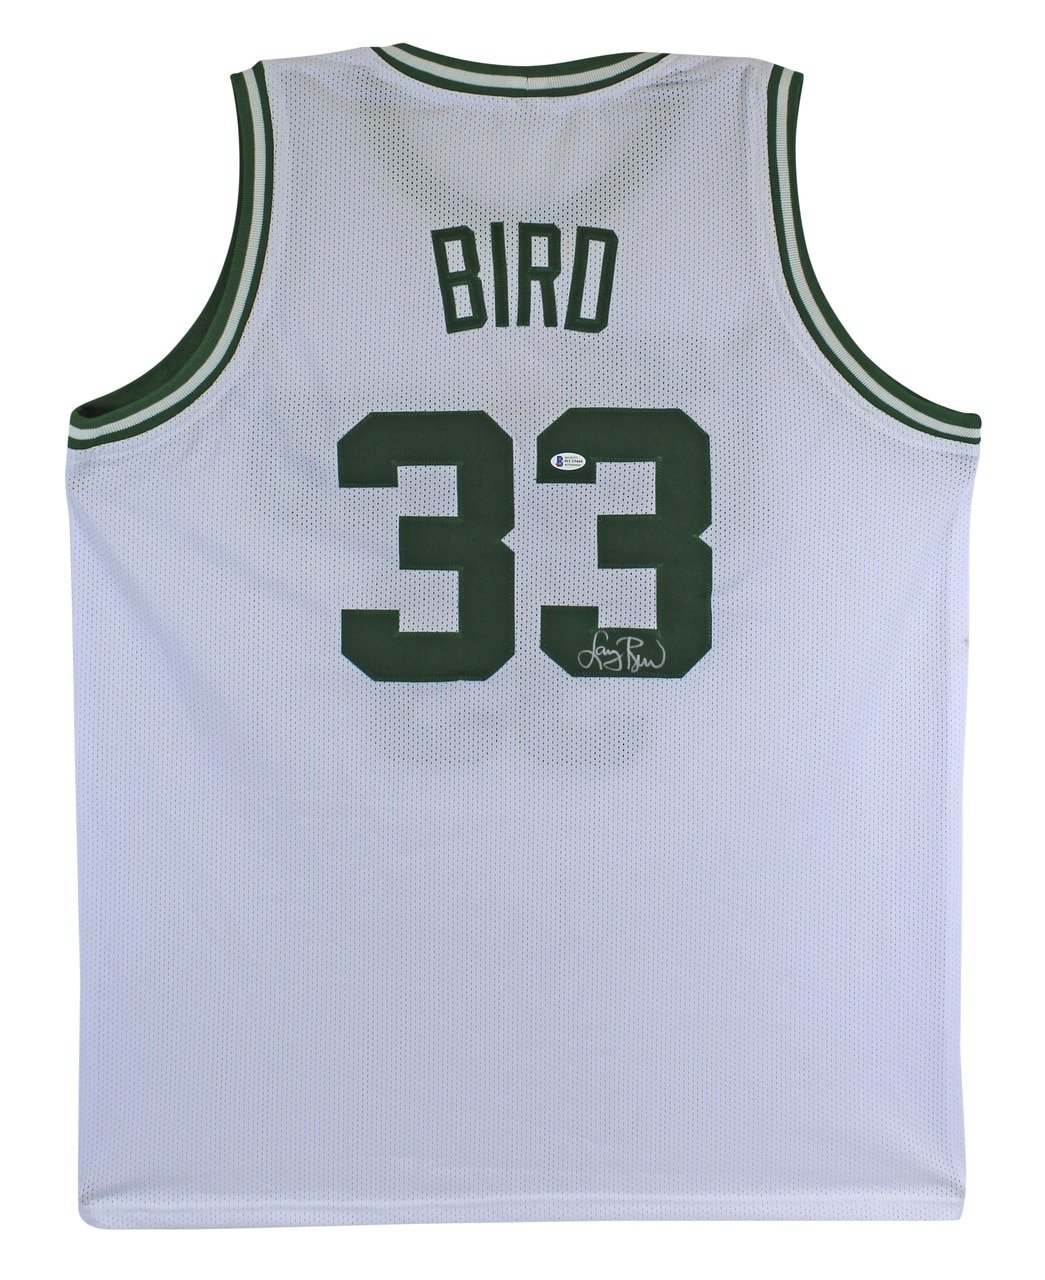 Larry Bird Authentic Signed White Pro Style Jersey Autographed BAS Witnessed